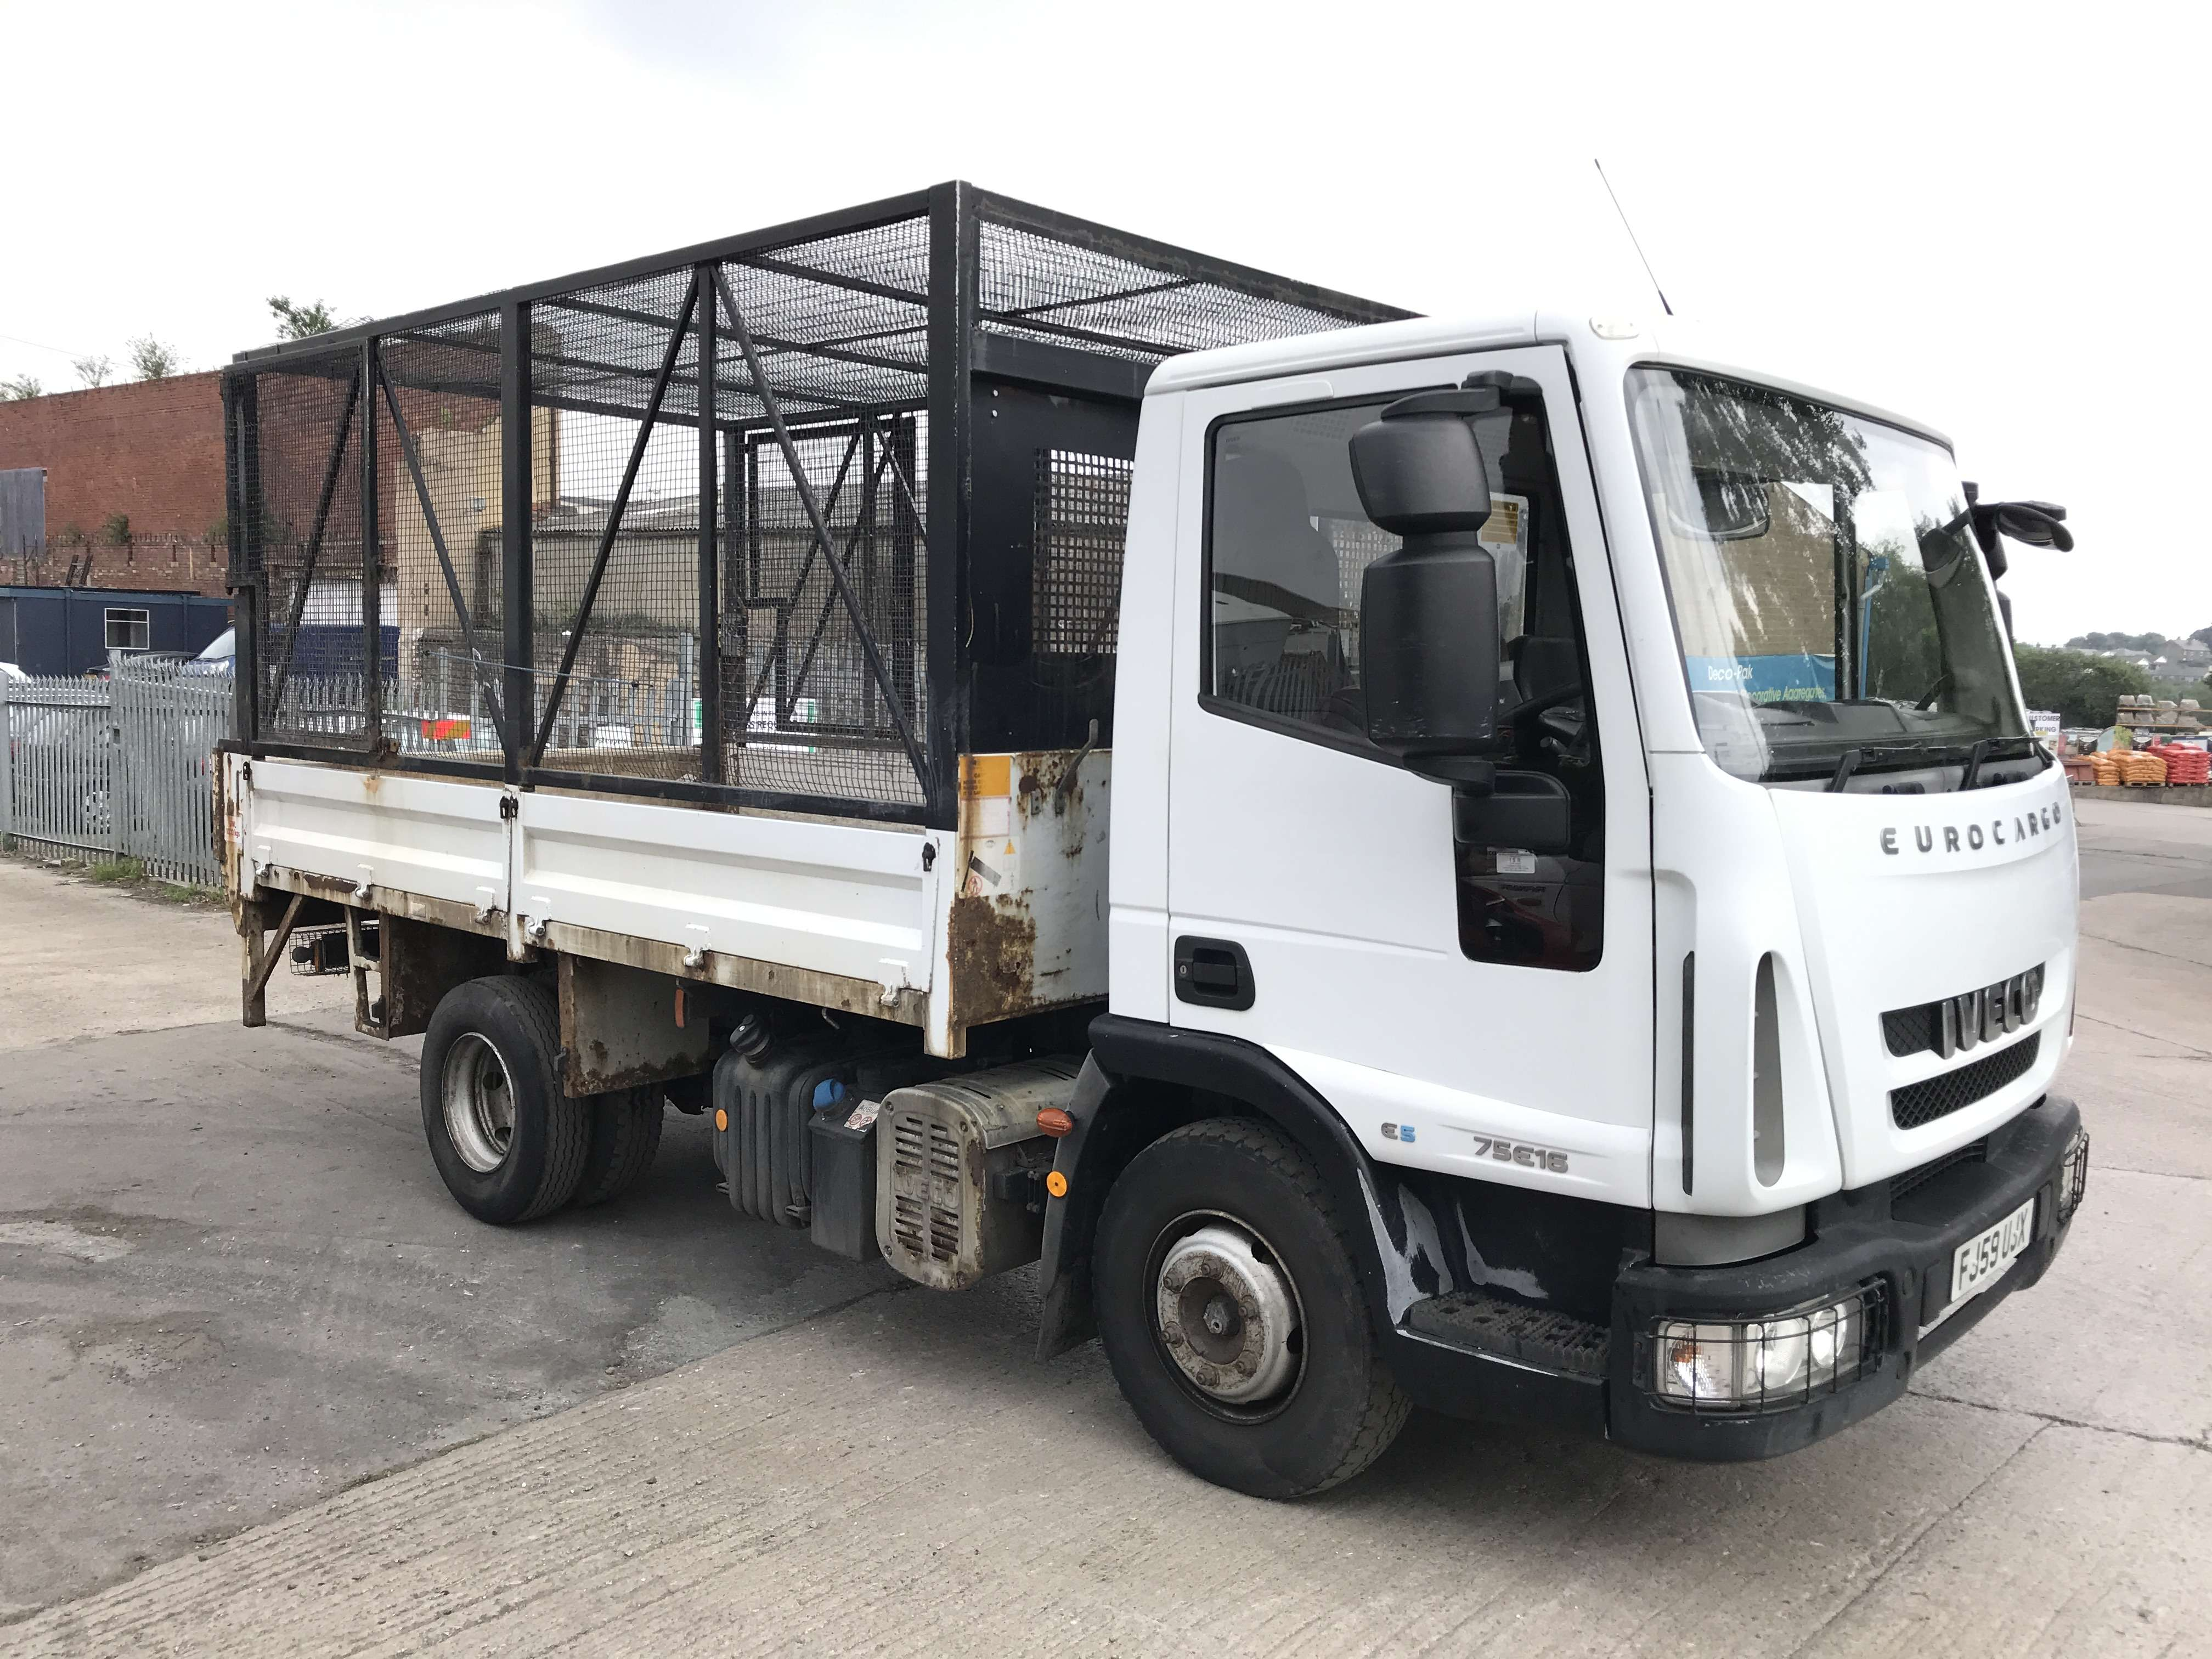 2010 Iveco Eurocargo 4x2 Caged Tipper For Sale - Choice 2 |